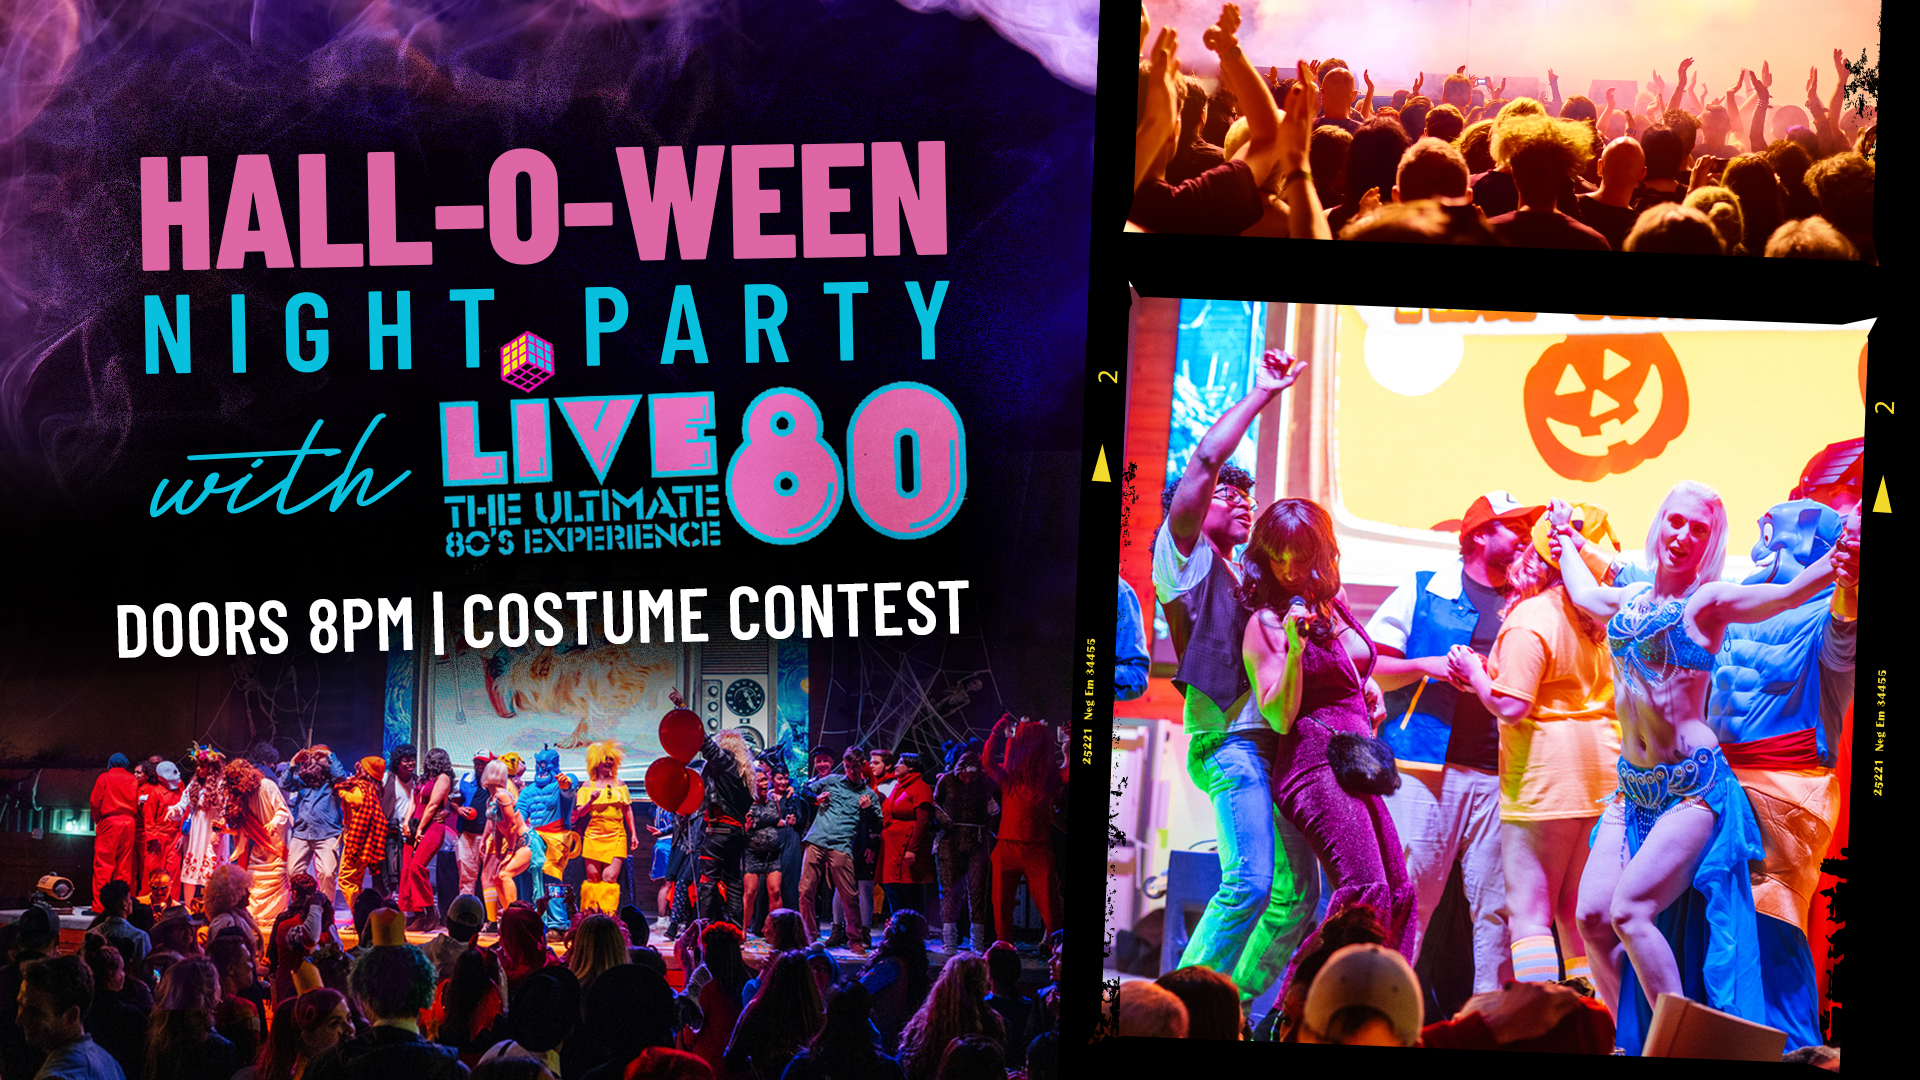 Promo image of Hall-O-Ween Party with LIVE 80 at Legacy Hall